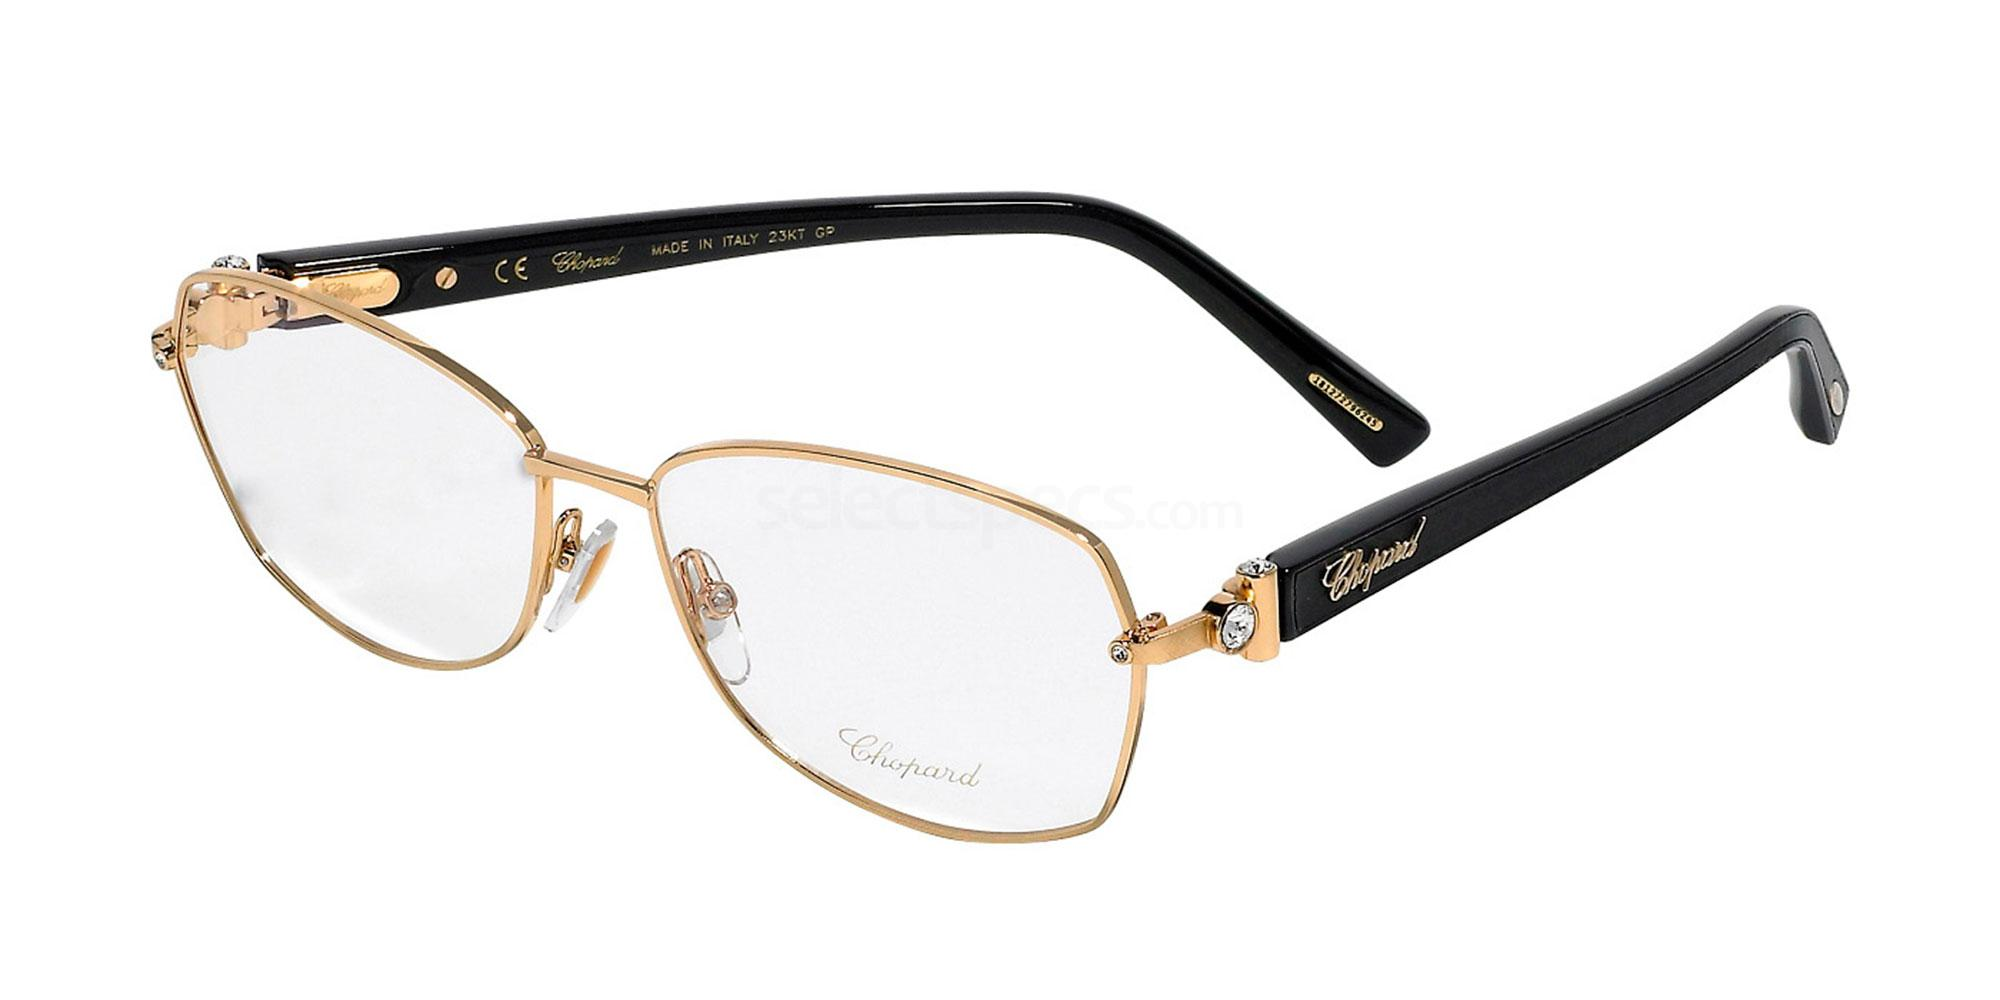 0300 VCHD14S Glasses, Chopard